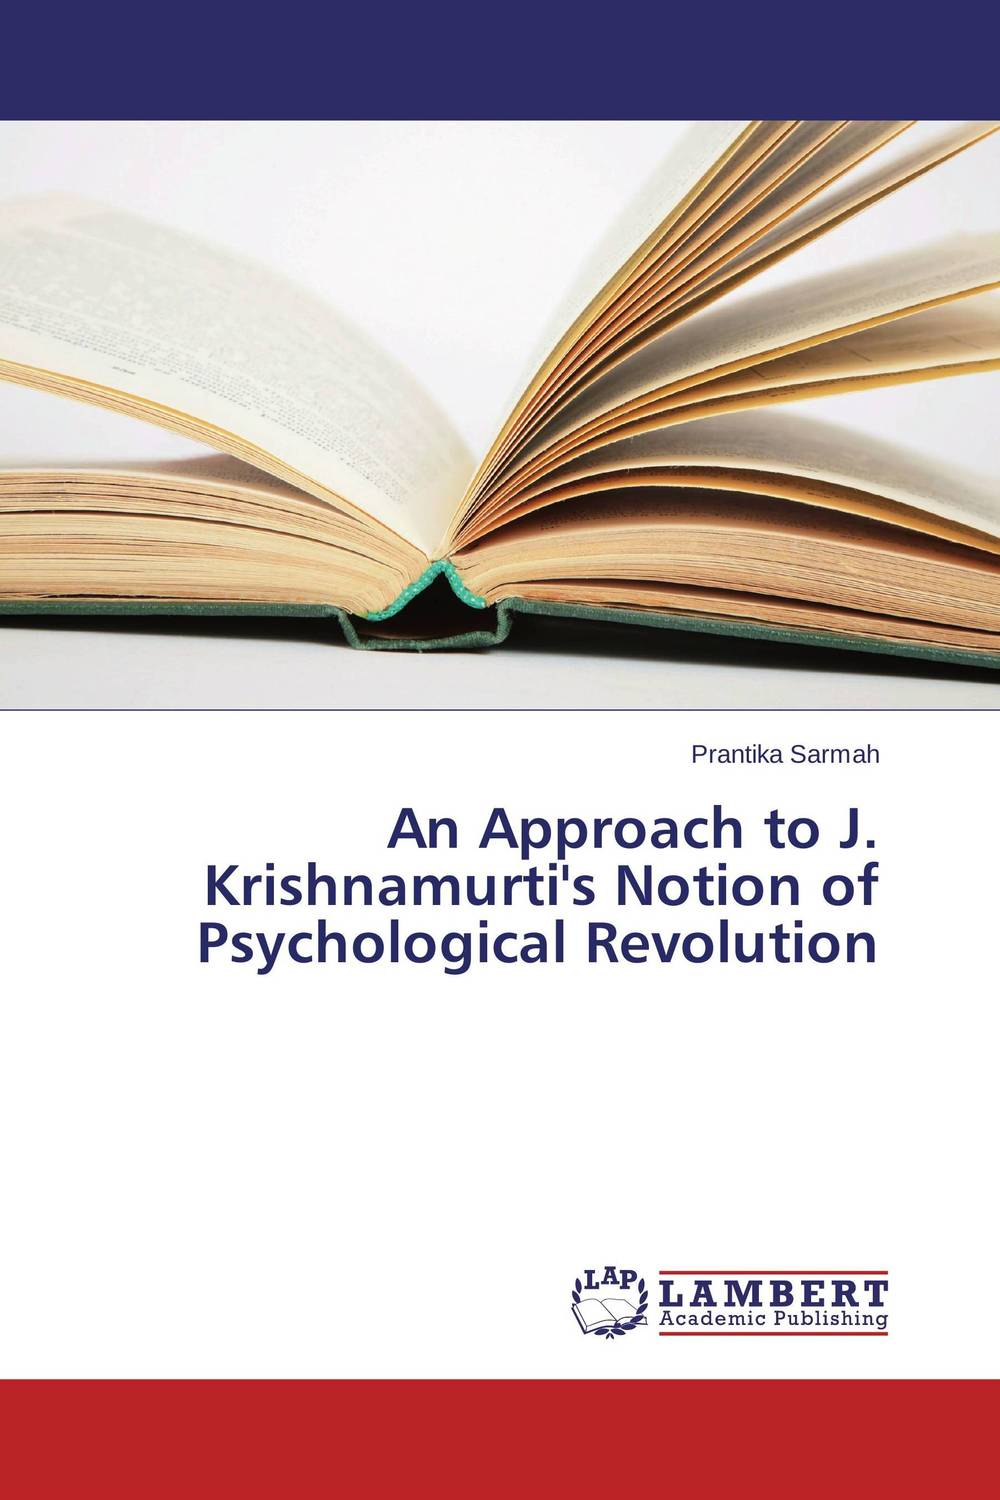 An Approach to J. Krishnamurti's Notion of Psychological Revolution verne j journey to the centre of the earth